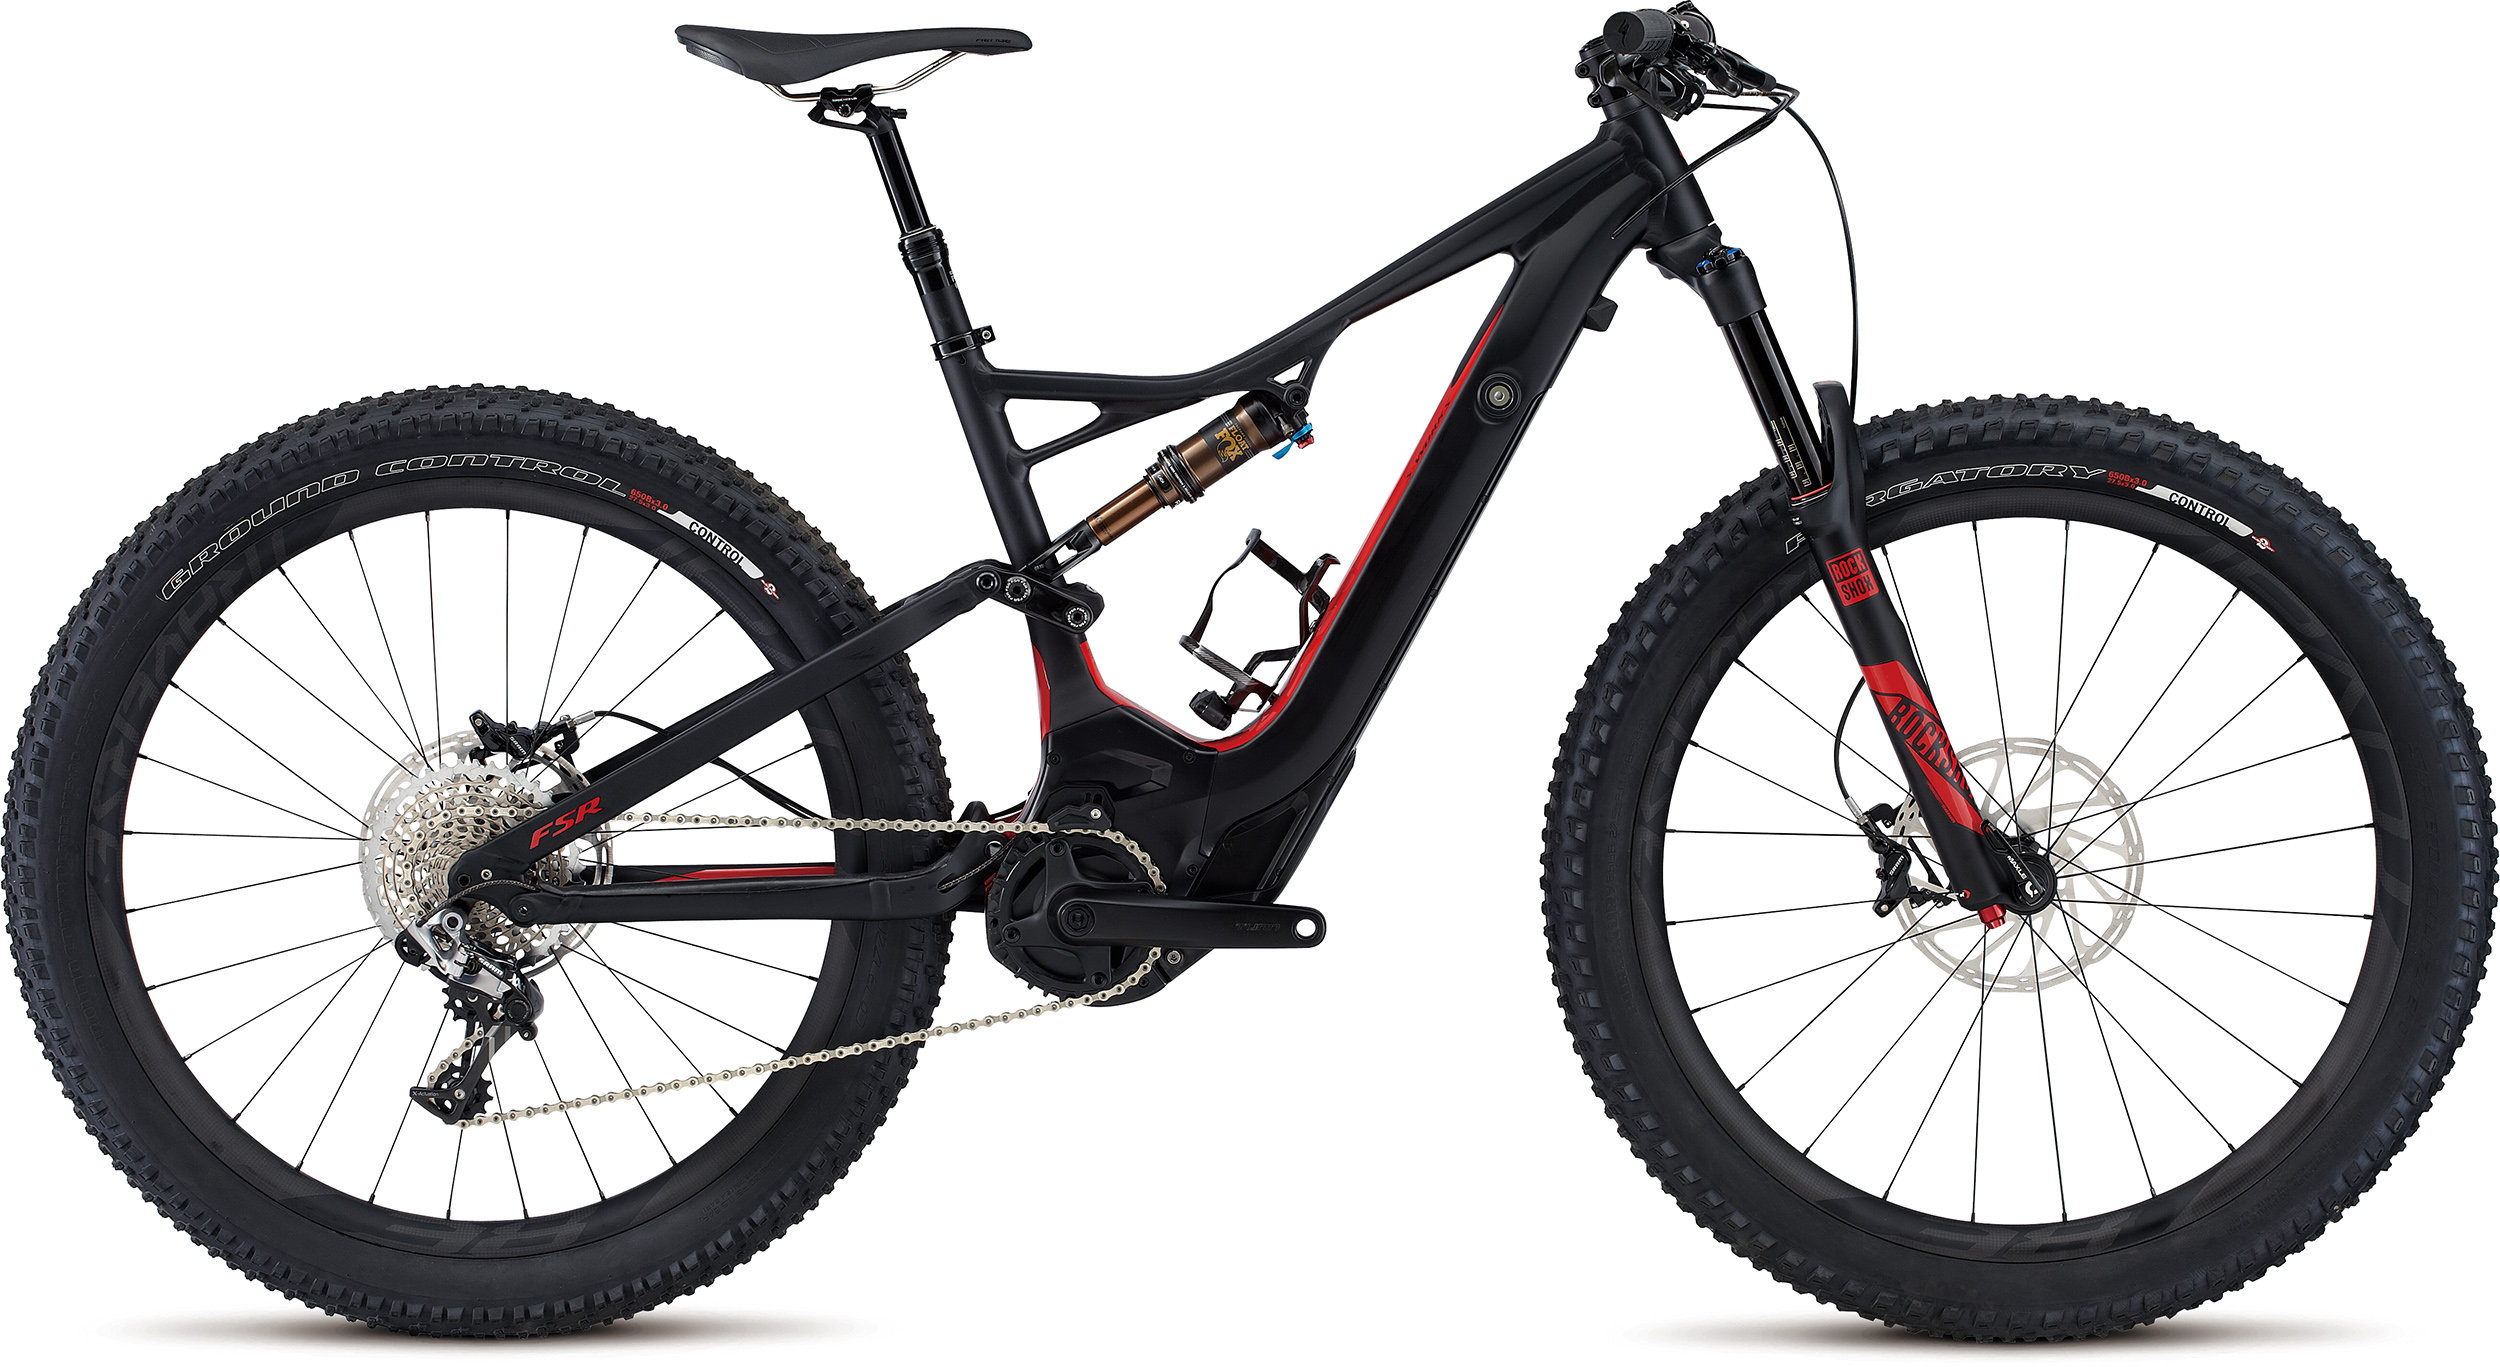 SPECIALIZED SW LEVO FSR 6FATTIE CE BLK/FLORED S - Randen Bike GmbH